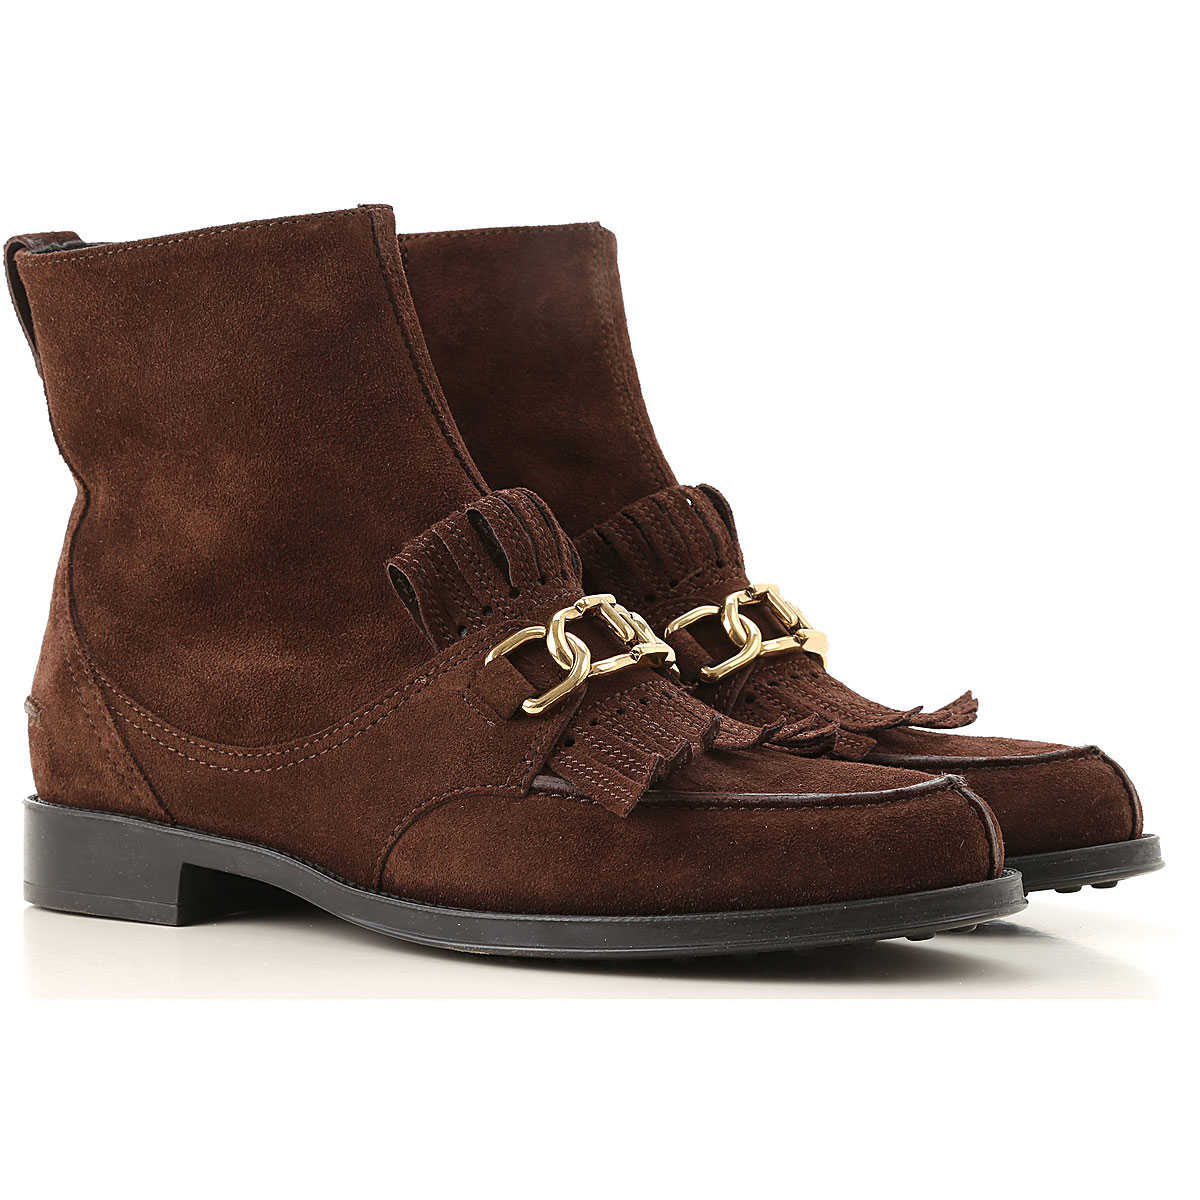 Tods Chelsea Boots for Women On Sale Dark Brown SE - GOOFASH